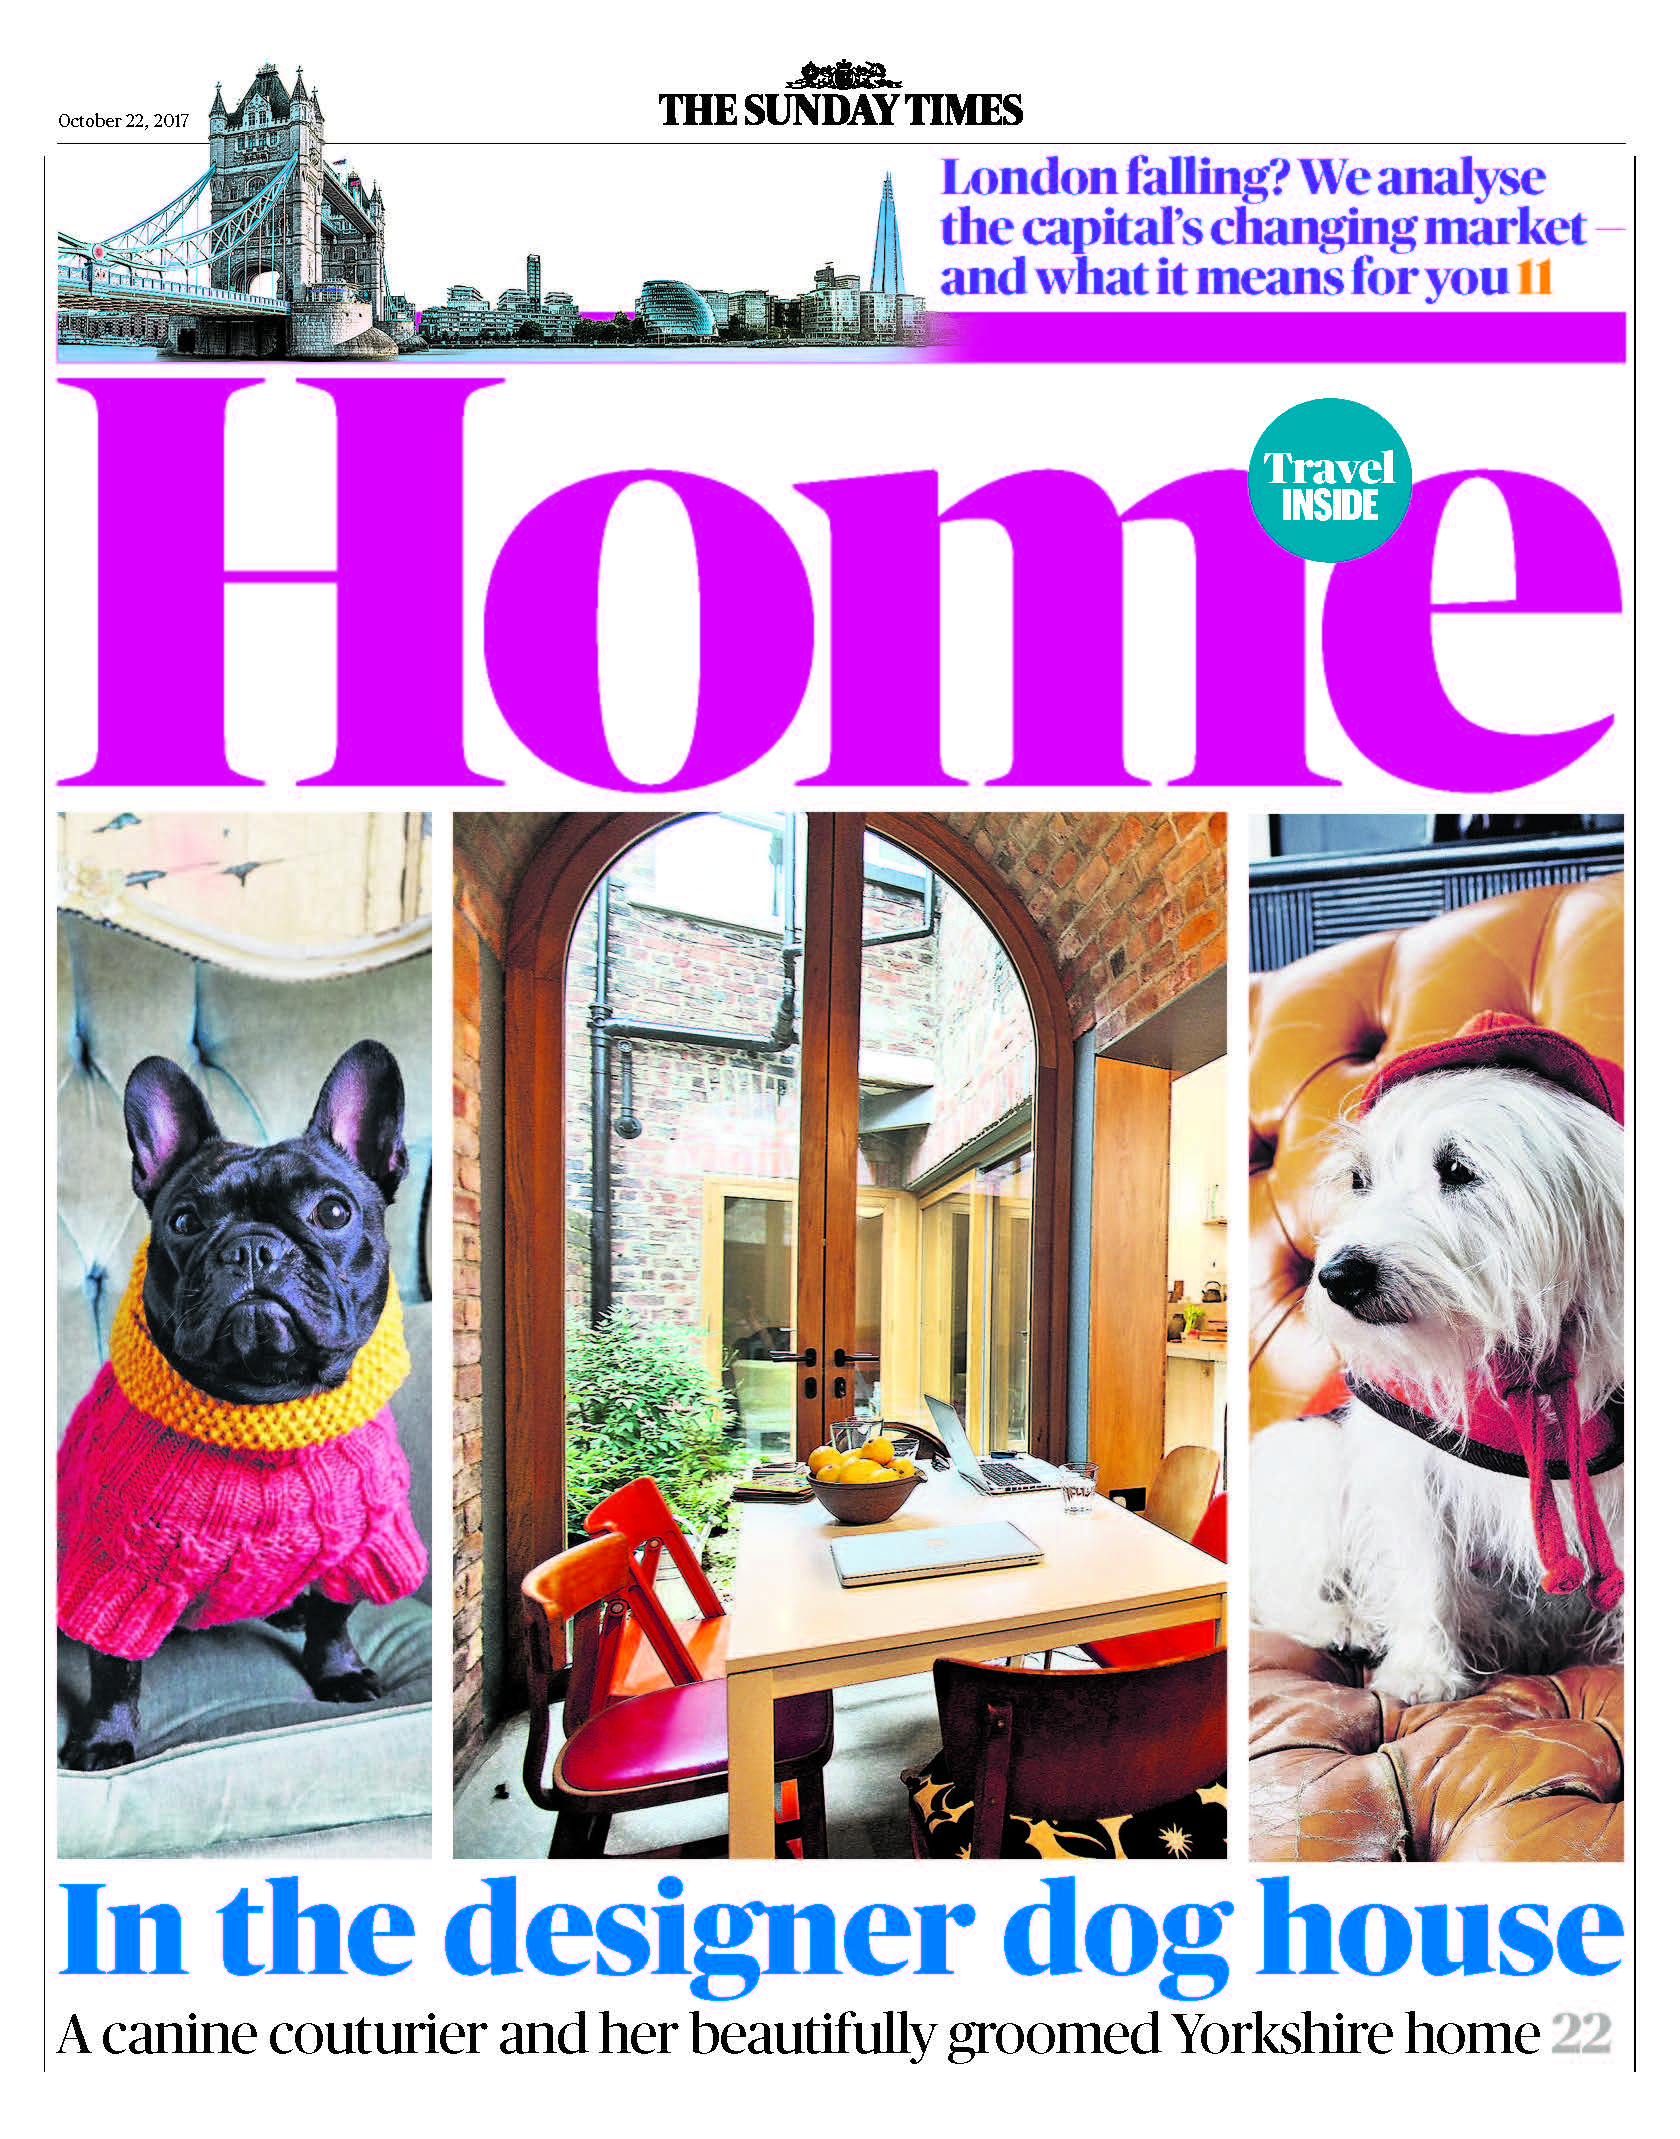 dog, dogs, style, magazine, press, editorial, home, designer, dog, house